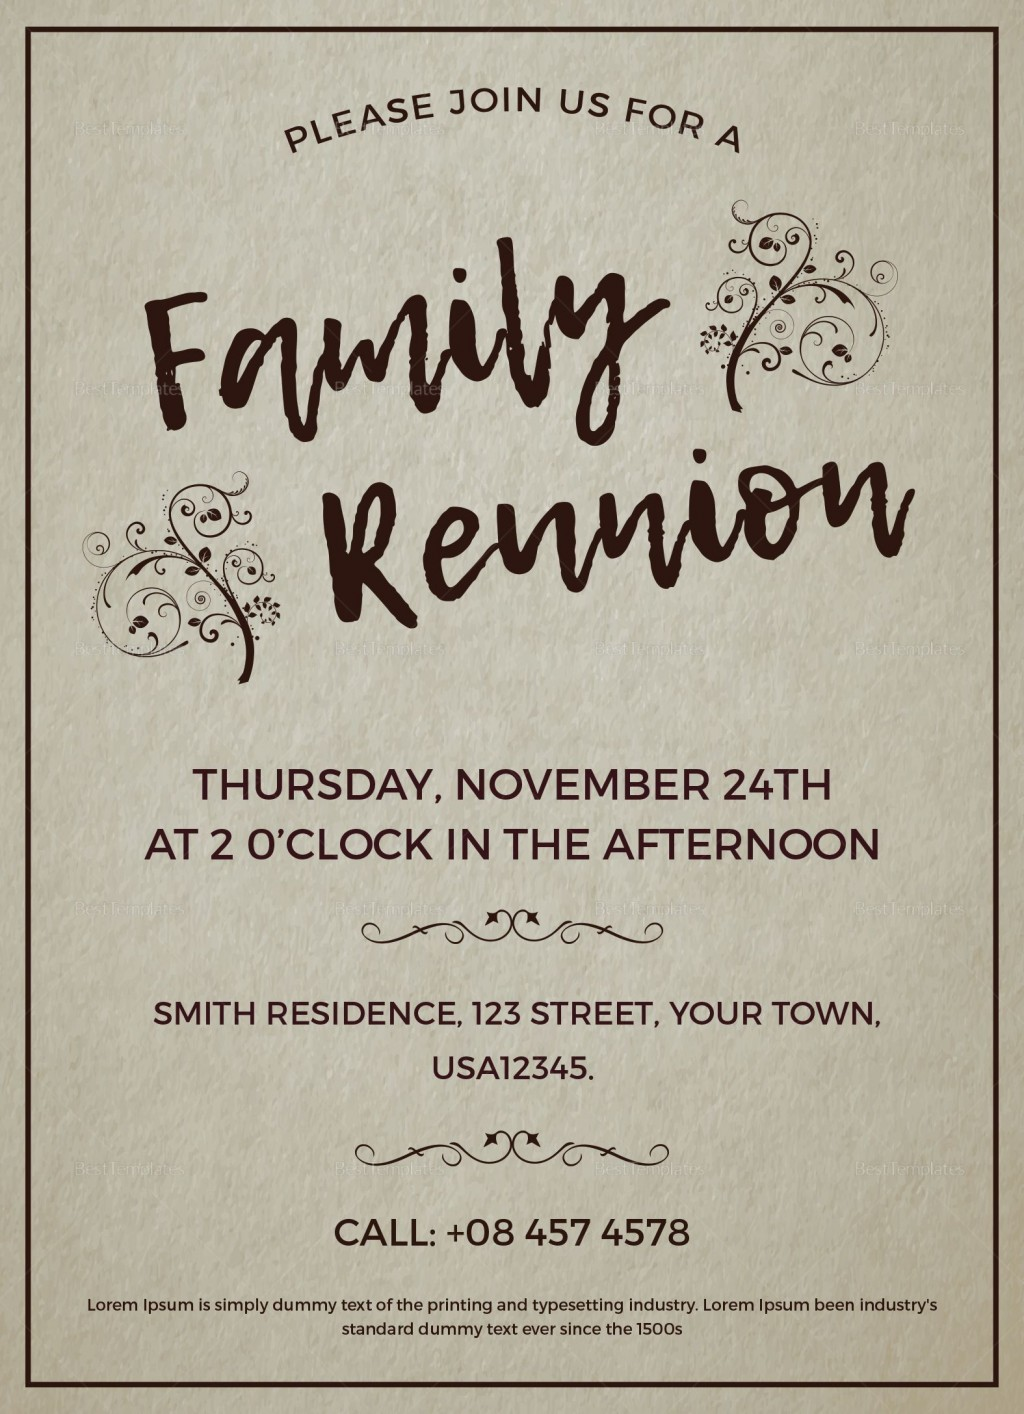 008 Astounding Family Reunion Flyer Template Publisher Design Large